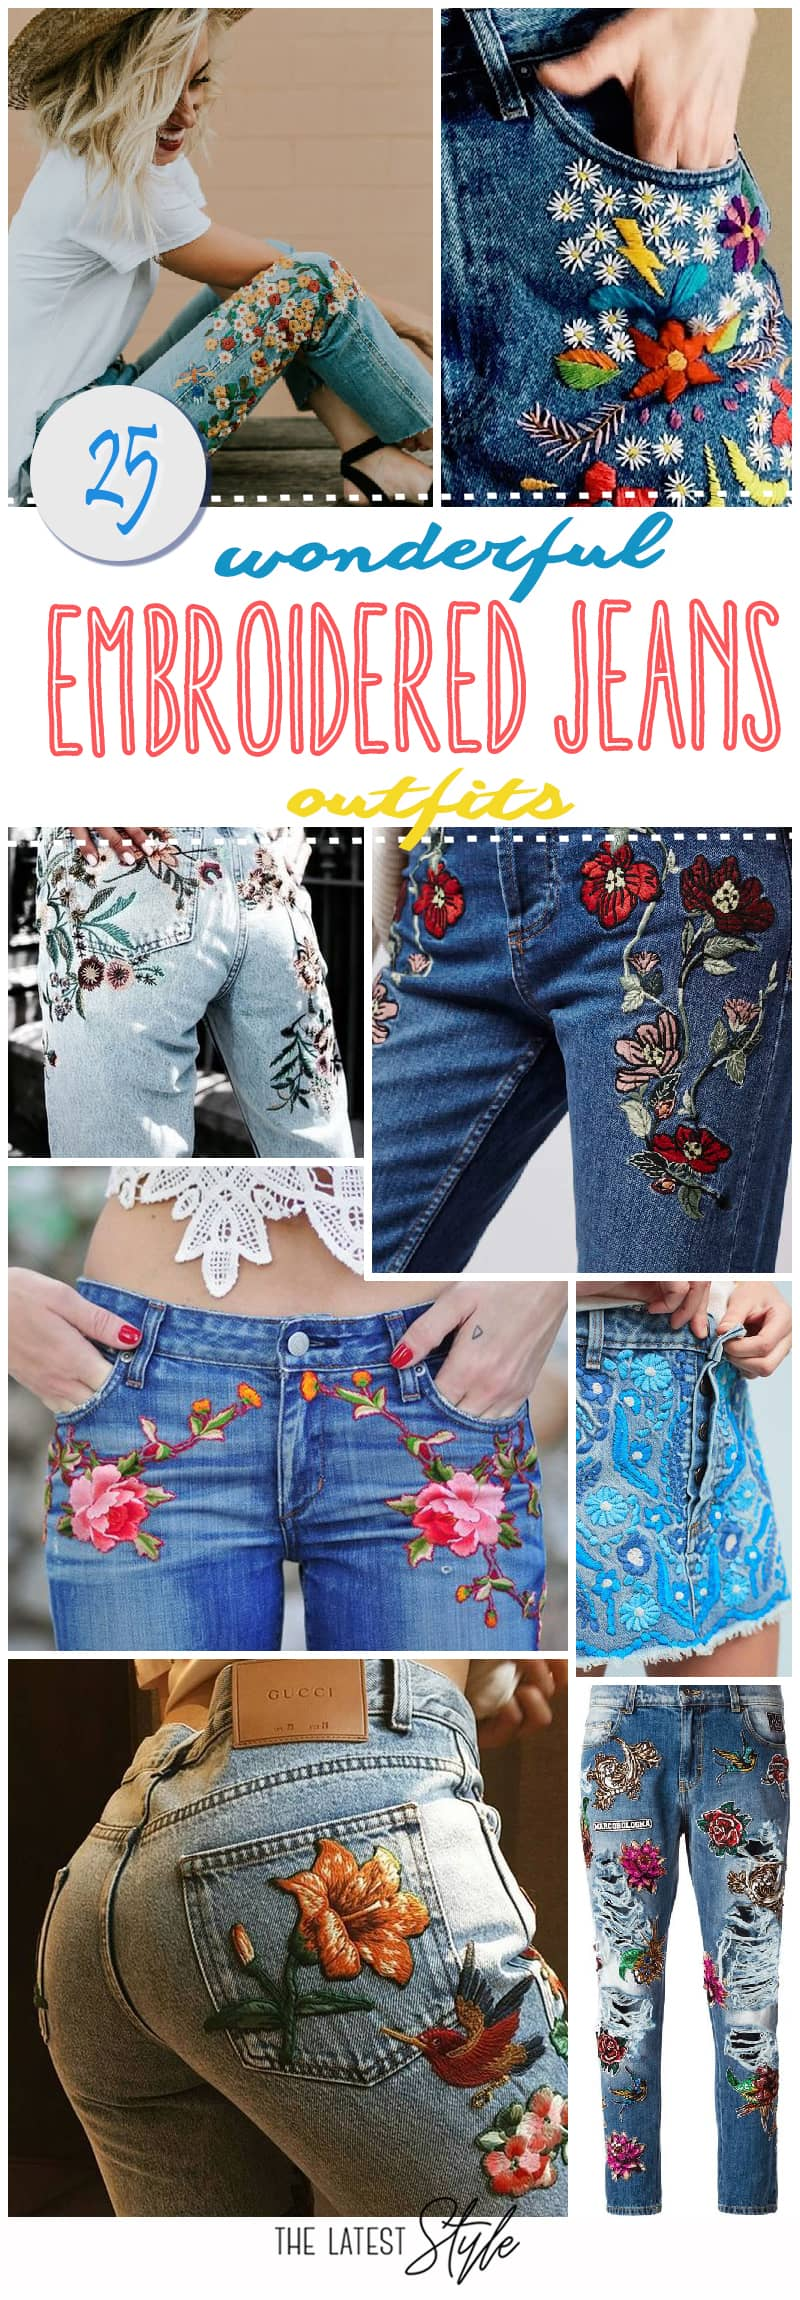 25 Wonderful Embroidered Jeans Outfits